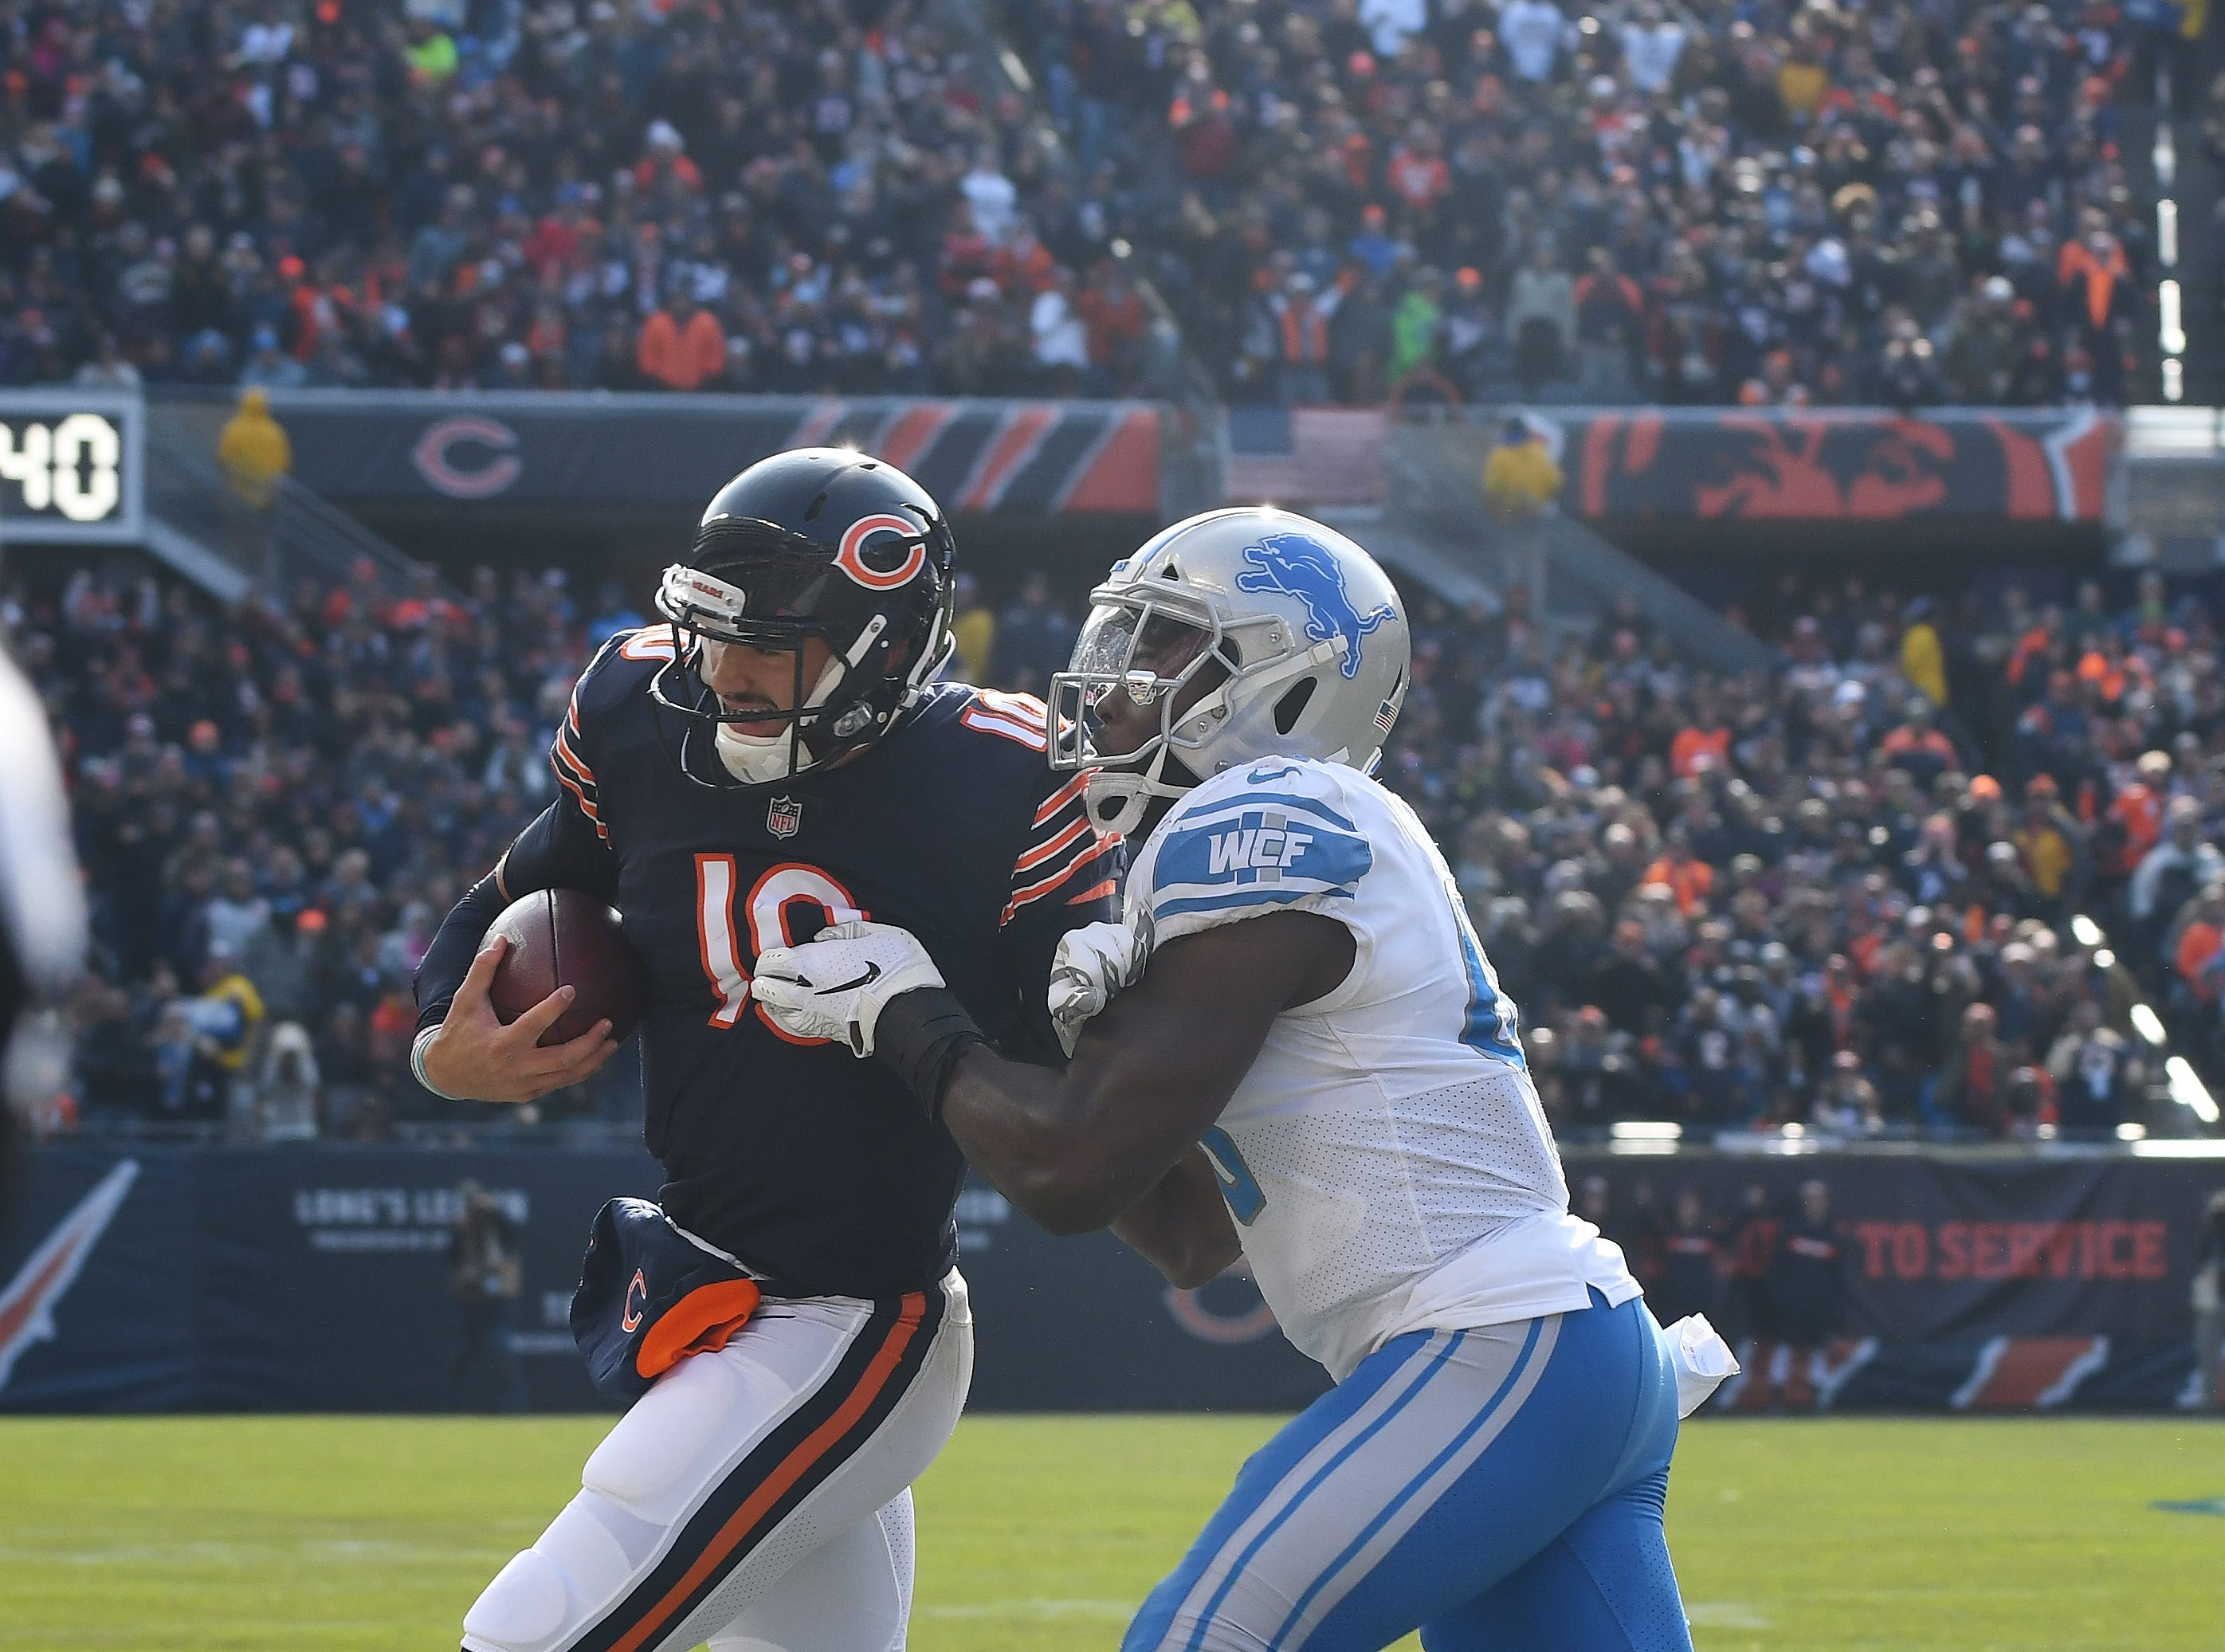 Lions' Jarrad Davis continues to shove Bears quarterback Mitchell Trubisky after going out of bounds and picks up a penalty during a Chicago offensive drive in the second quarter.